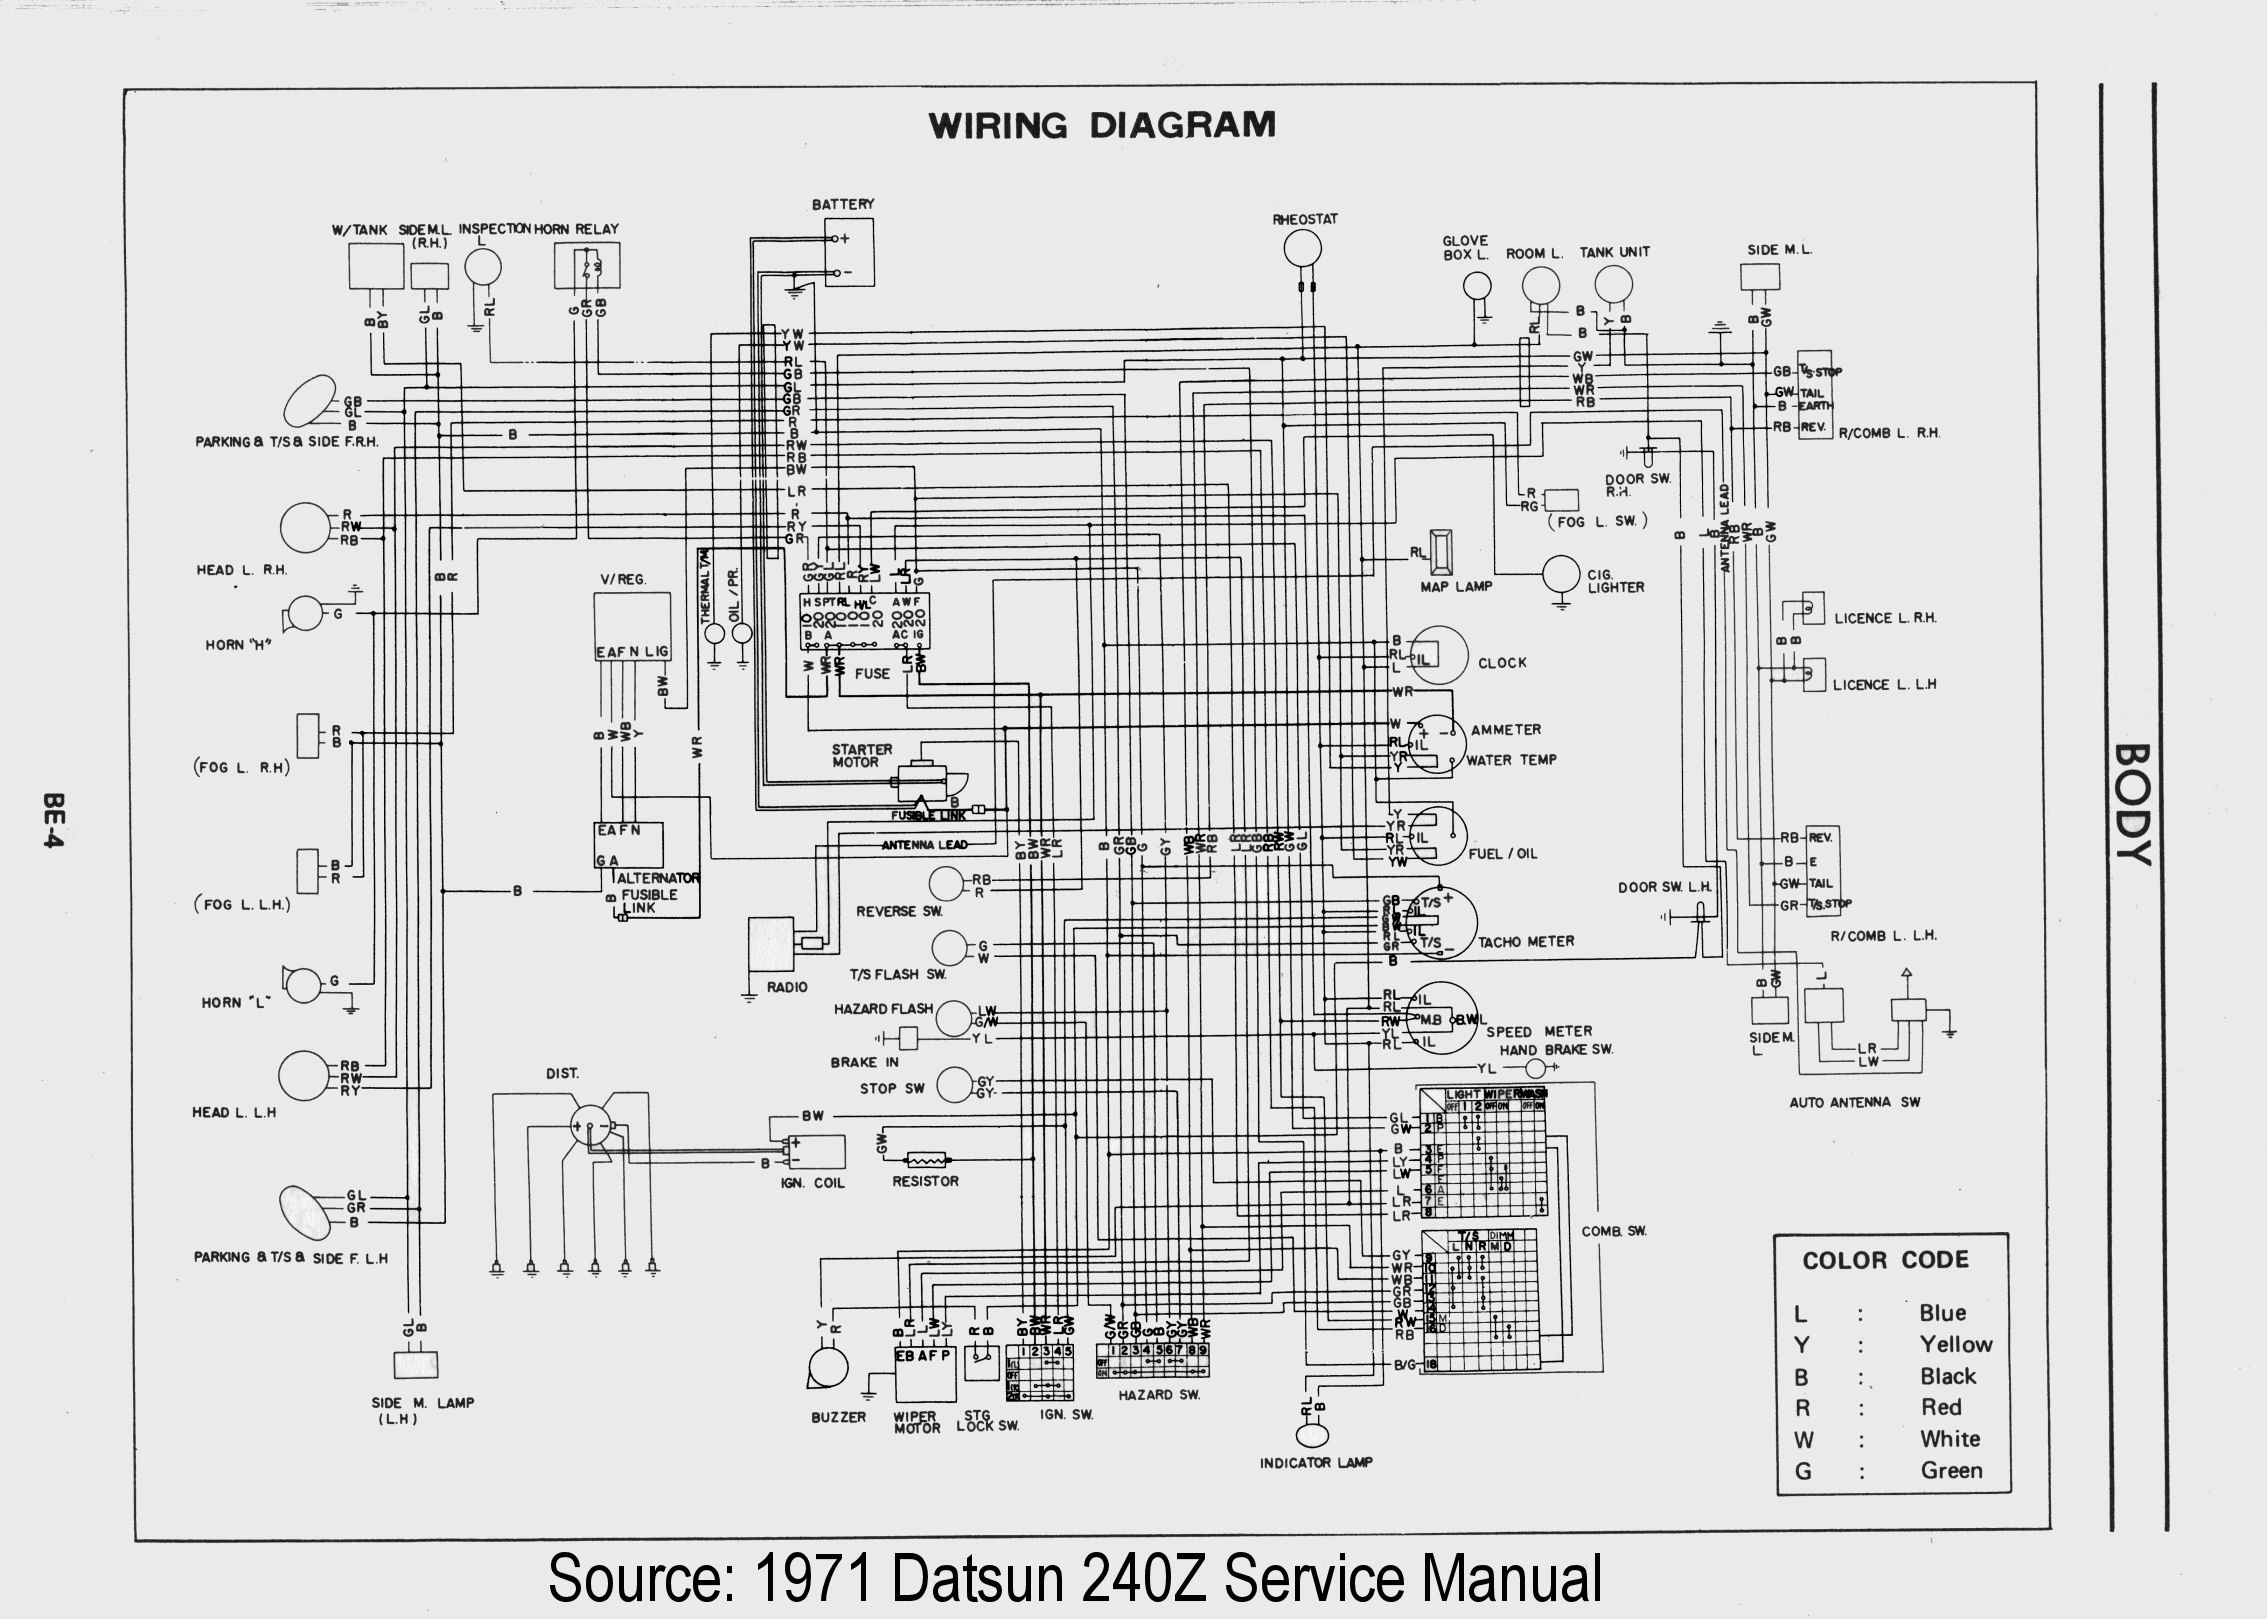 cooper wiring devices diagrams wiring diagrams instruct Power Windows Wiring Diagram combination switch wiring diagram 280zx 12 10 kenmo lp de \\u2022 mini cooper engine wire diagram cooper wiring devices diagrams